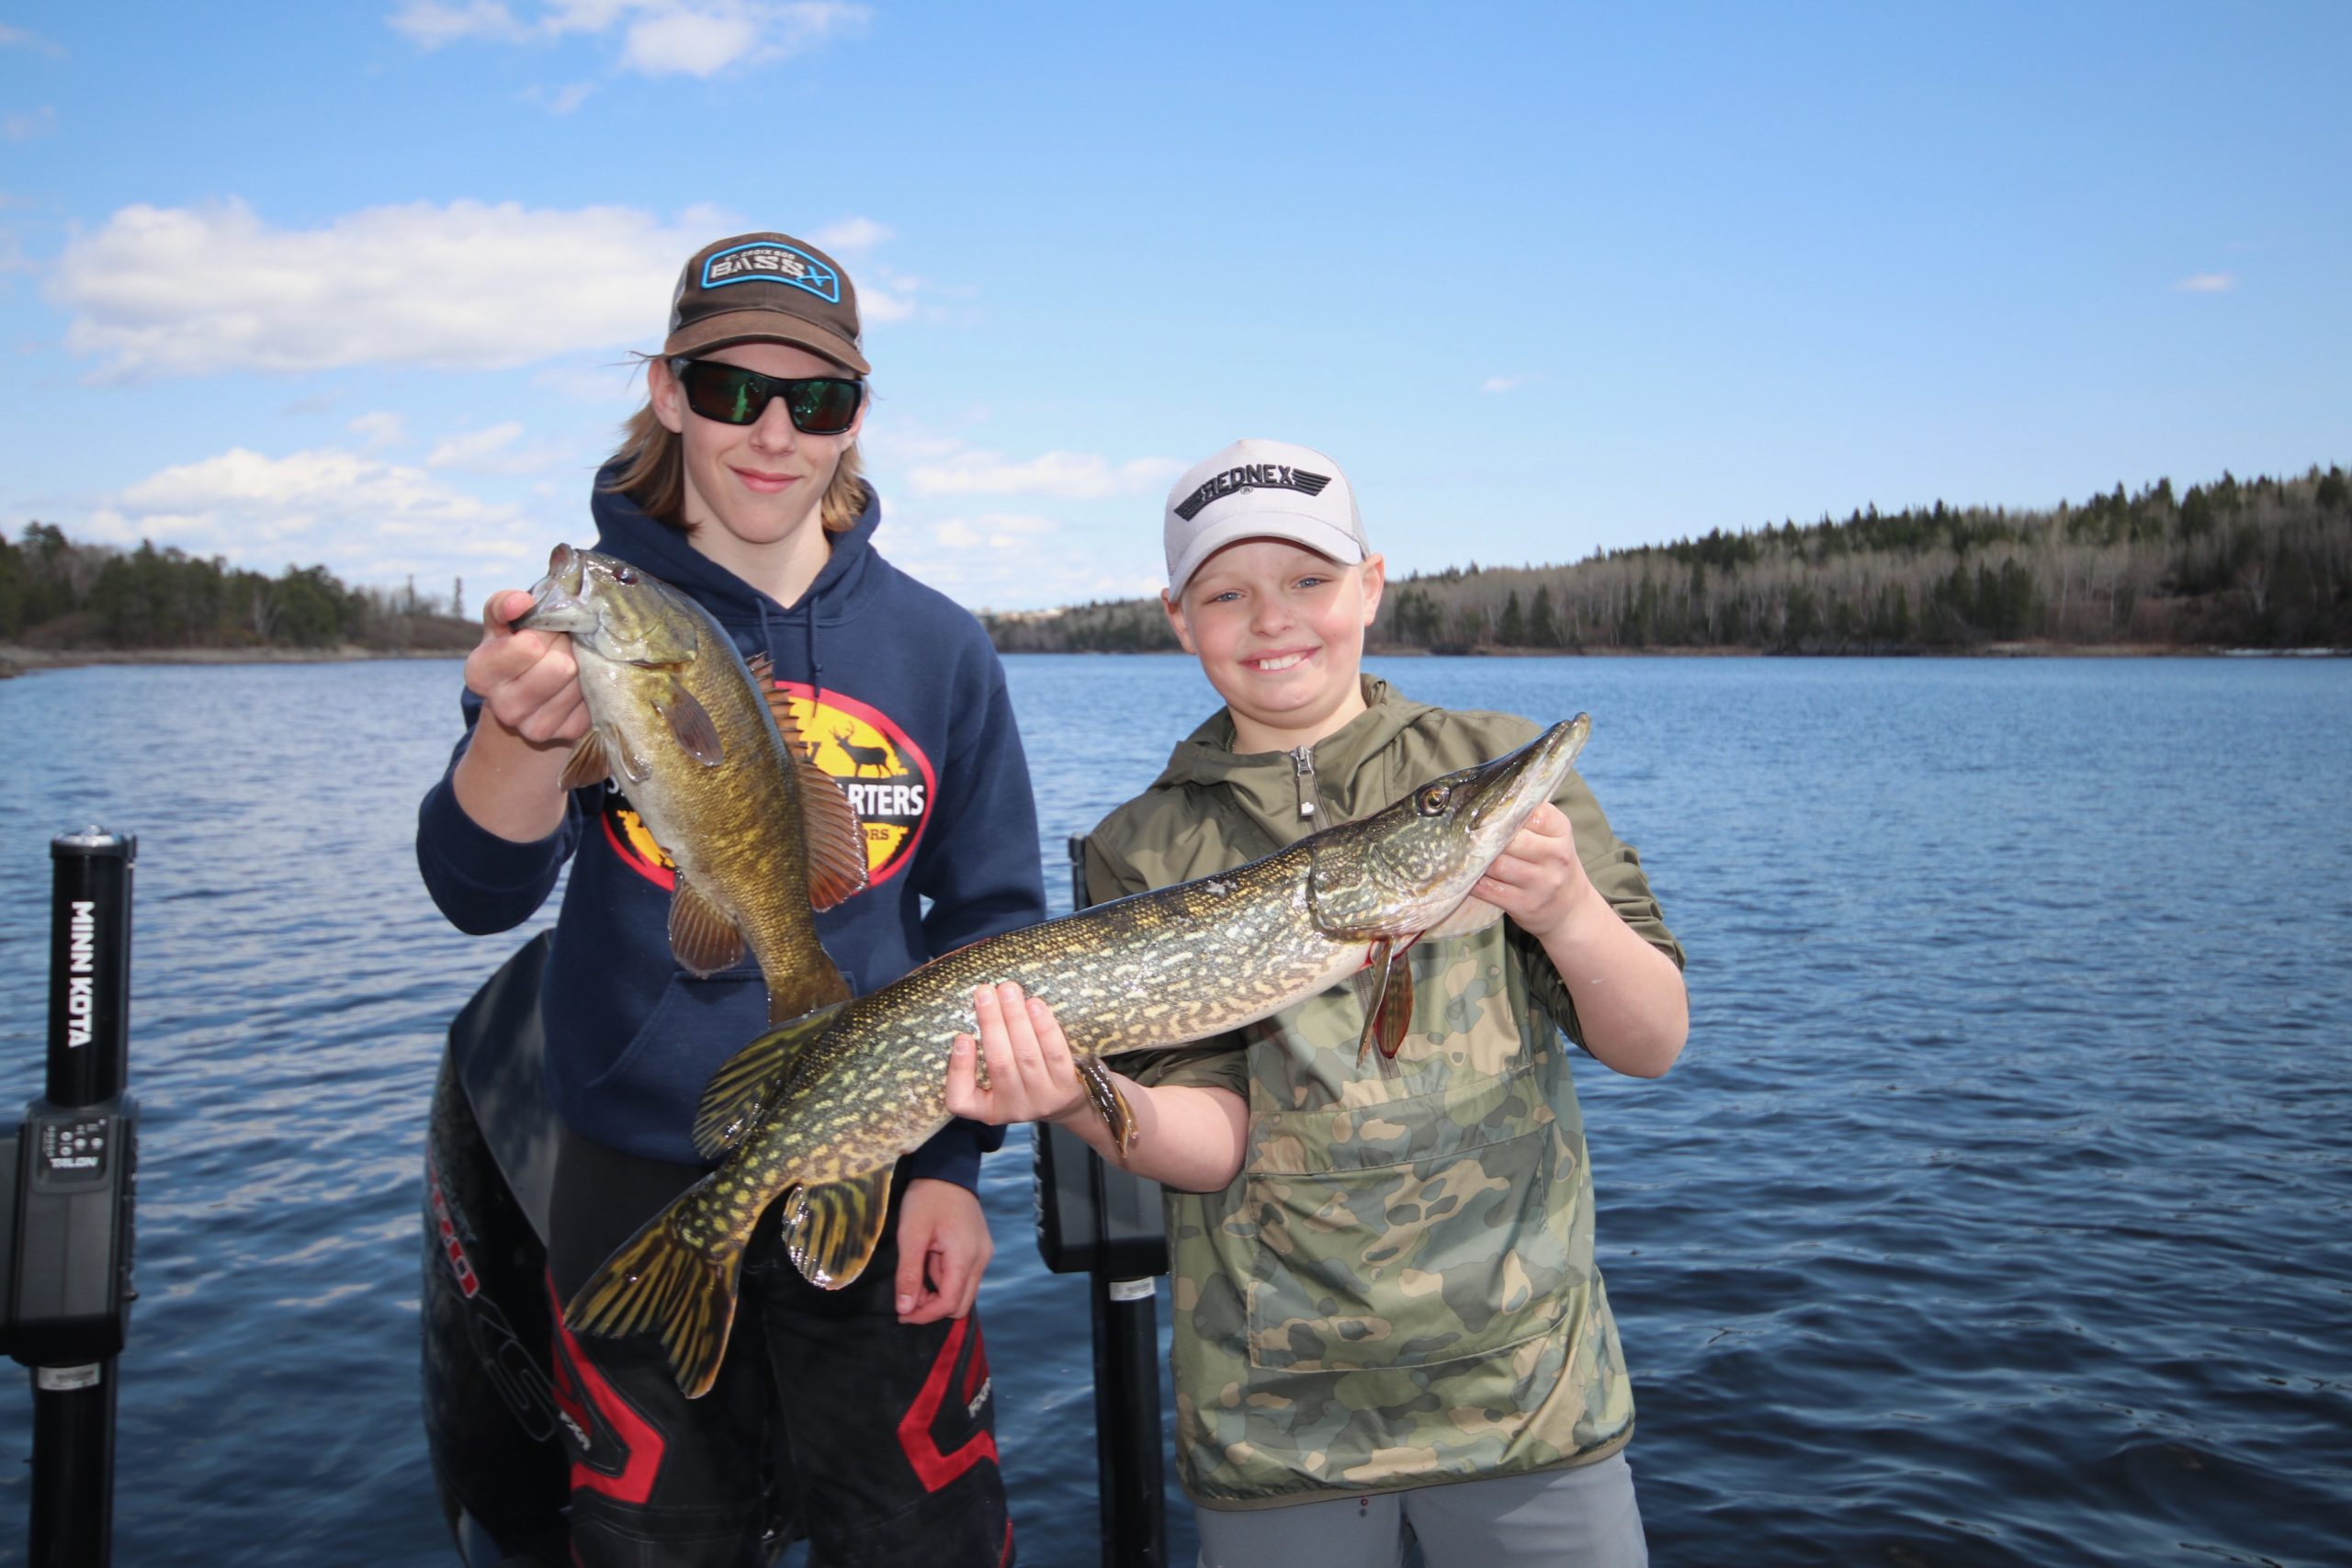 Take your kids and friends fishing